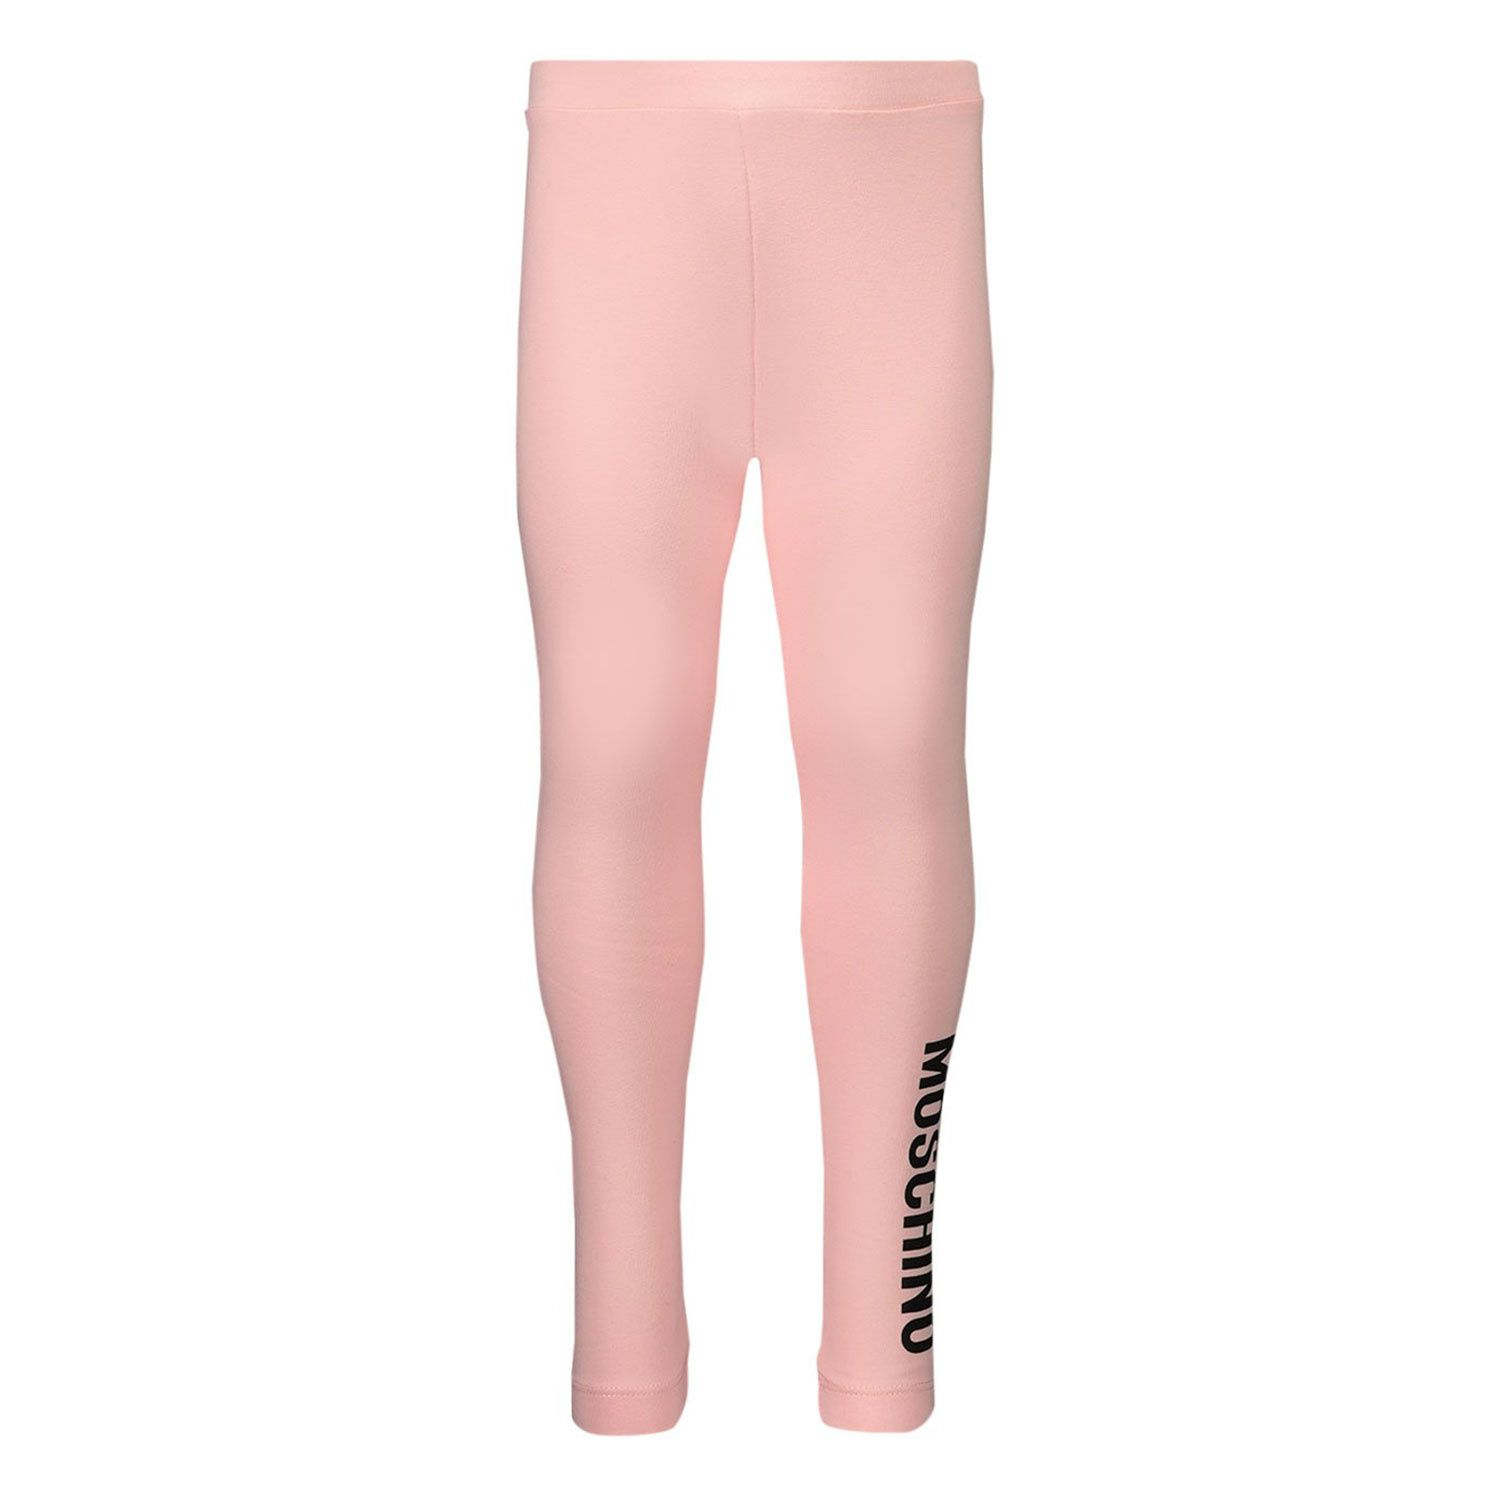 Picture of Moschino M2P02B baby legging light pink